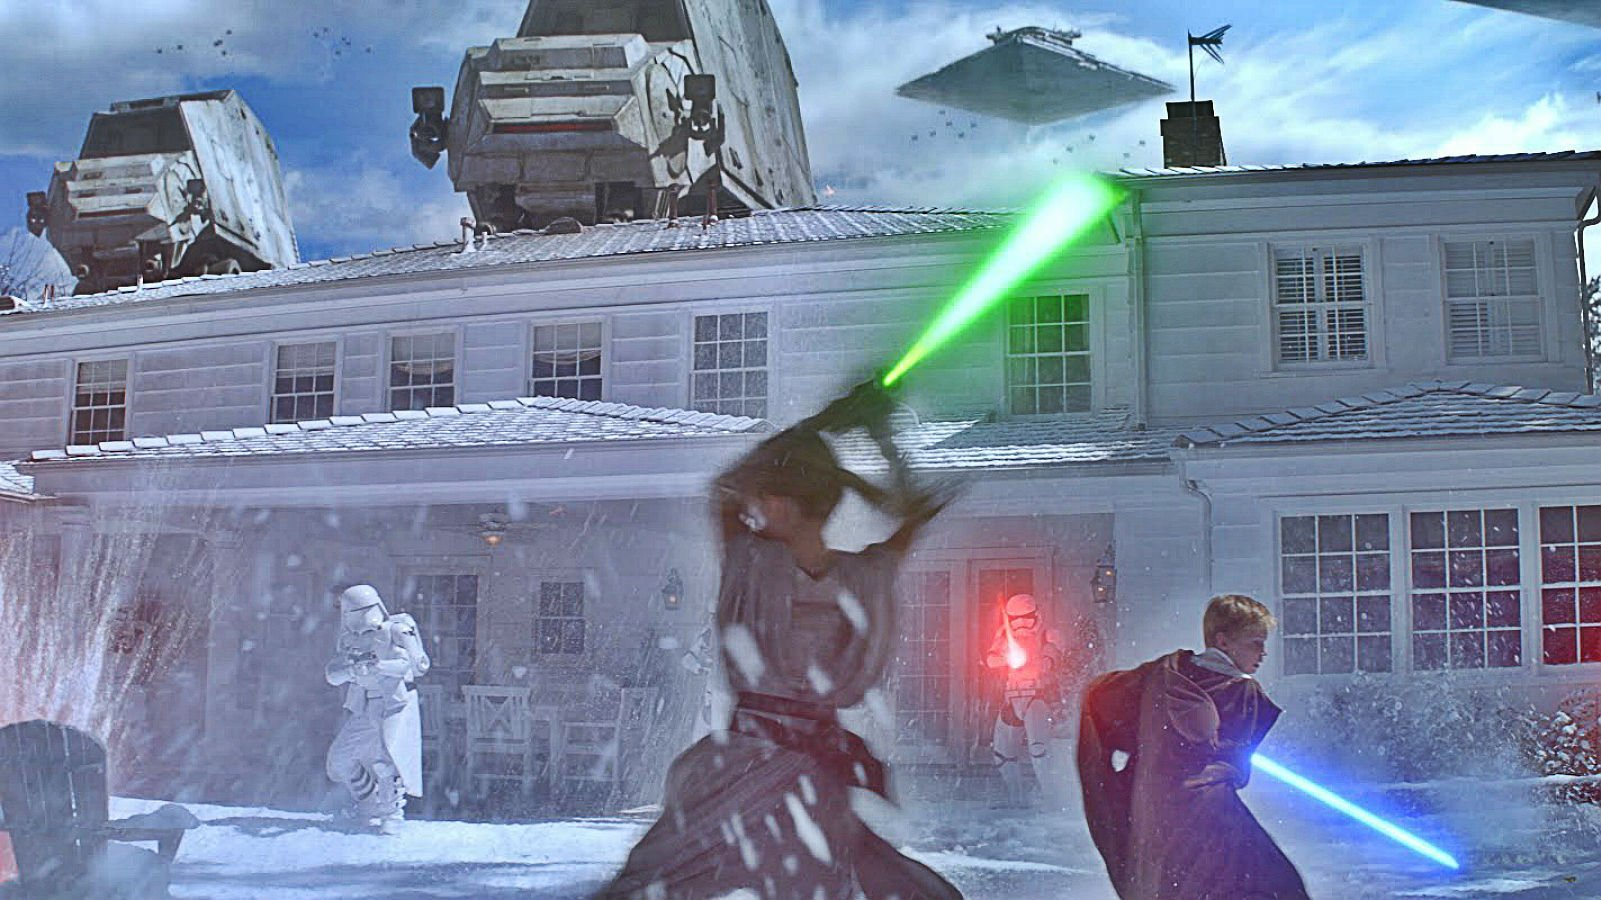 3d Action Game Wallpaper Star Wars Sci Fi Action Fighting Futuristic Series